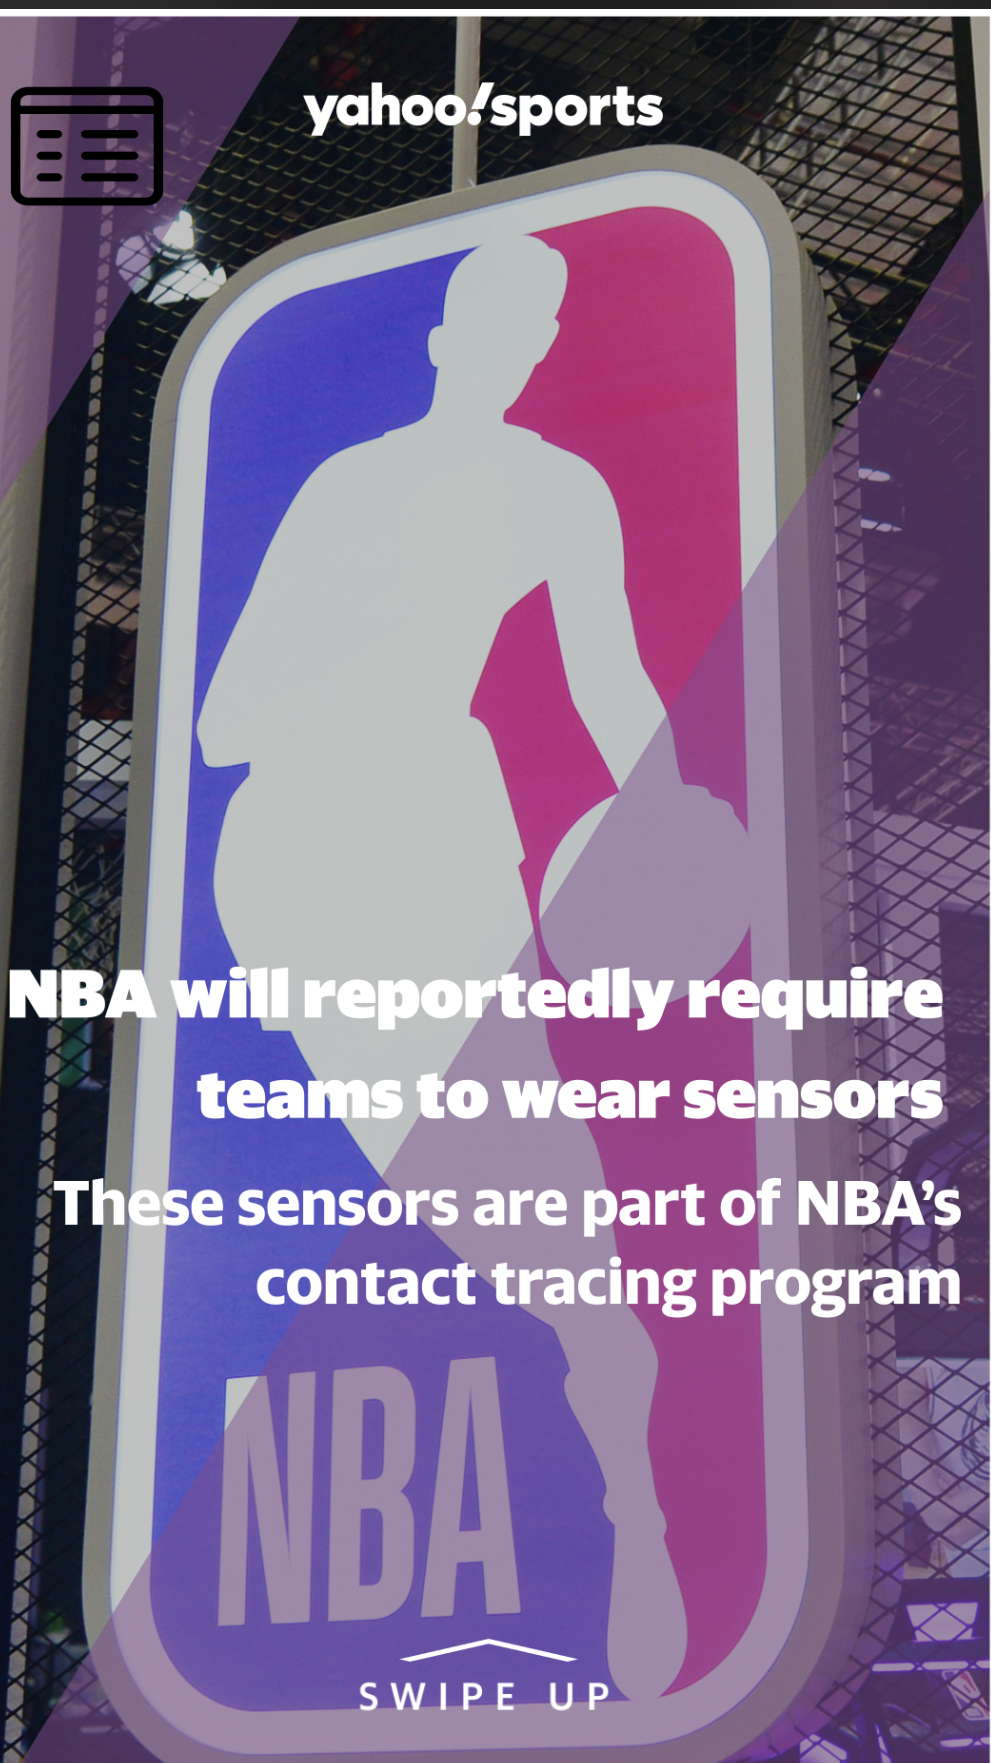 www.yahoo.com: NBA will reportedly require teams to wear sensors